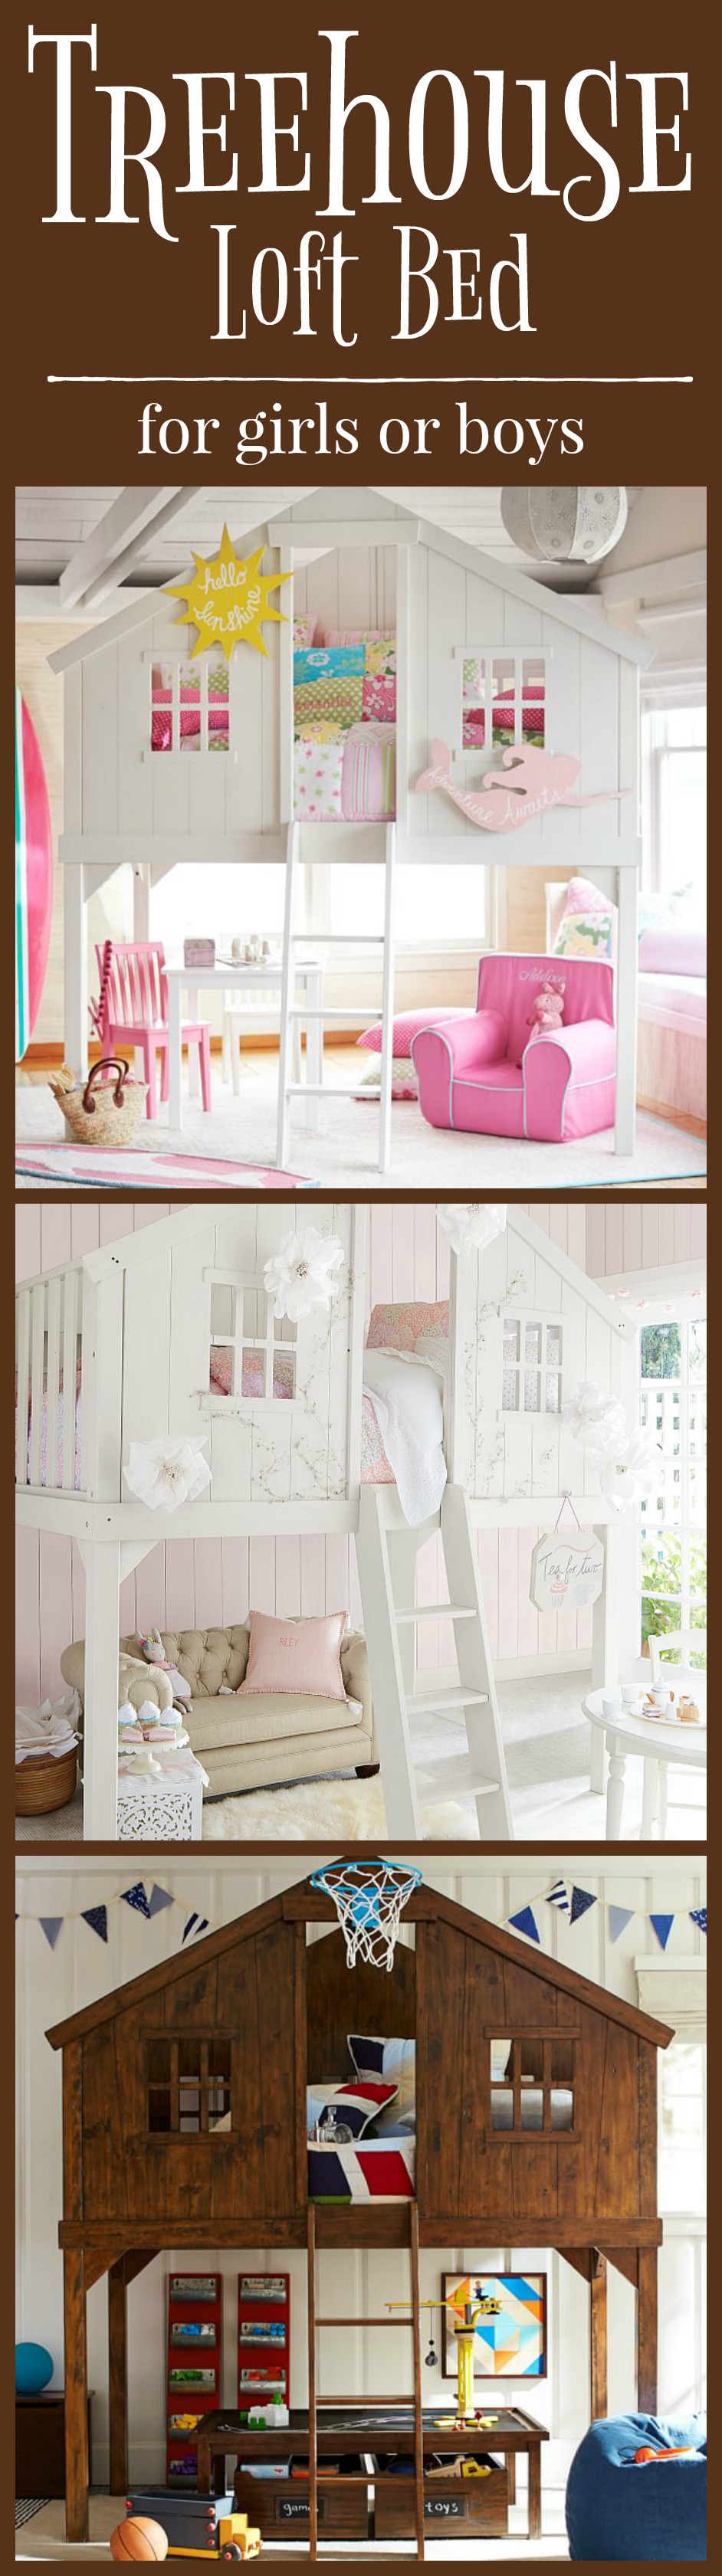 Camo loft bed with slide  This magical retreat for your child evokes the spirit and appeal of